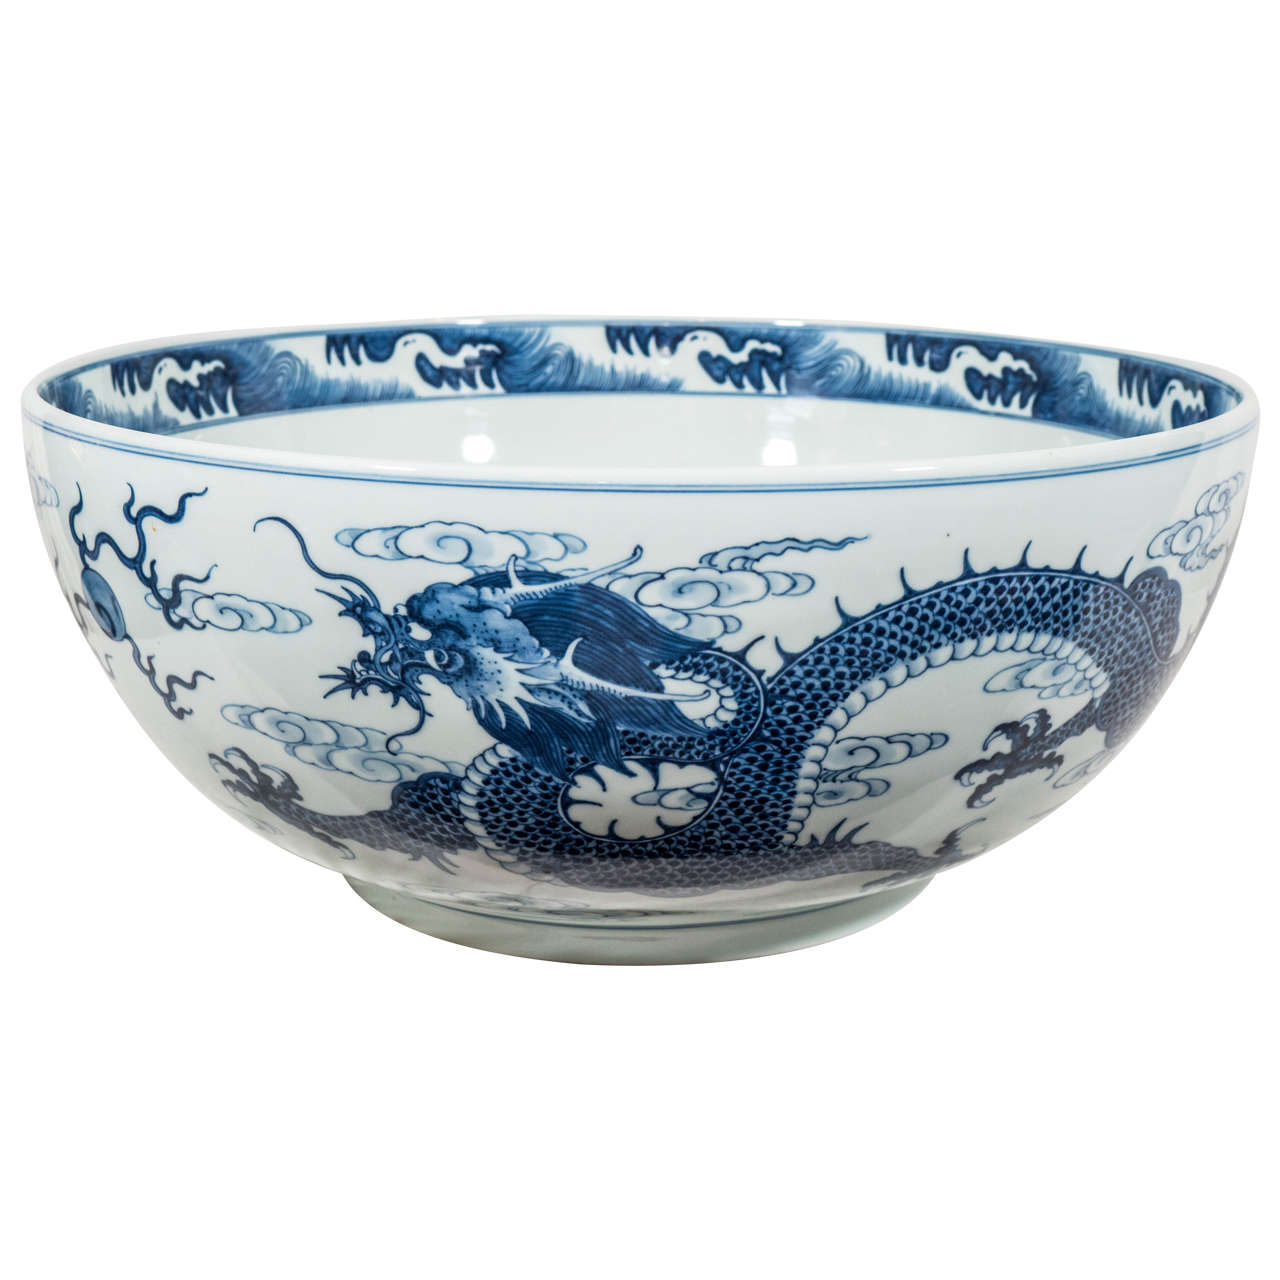 A Mive Blue And White Chinese Porcelain Dragon Bowl For